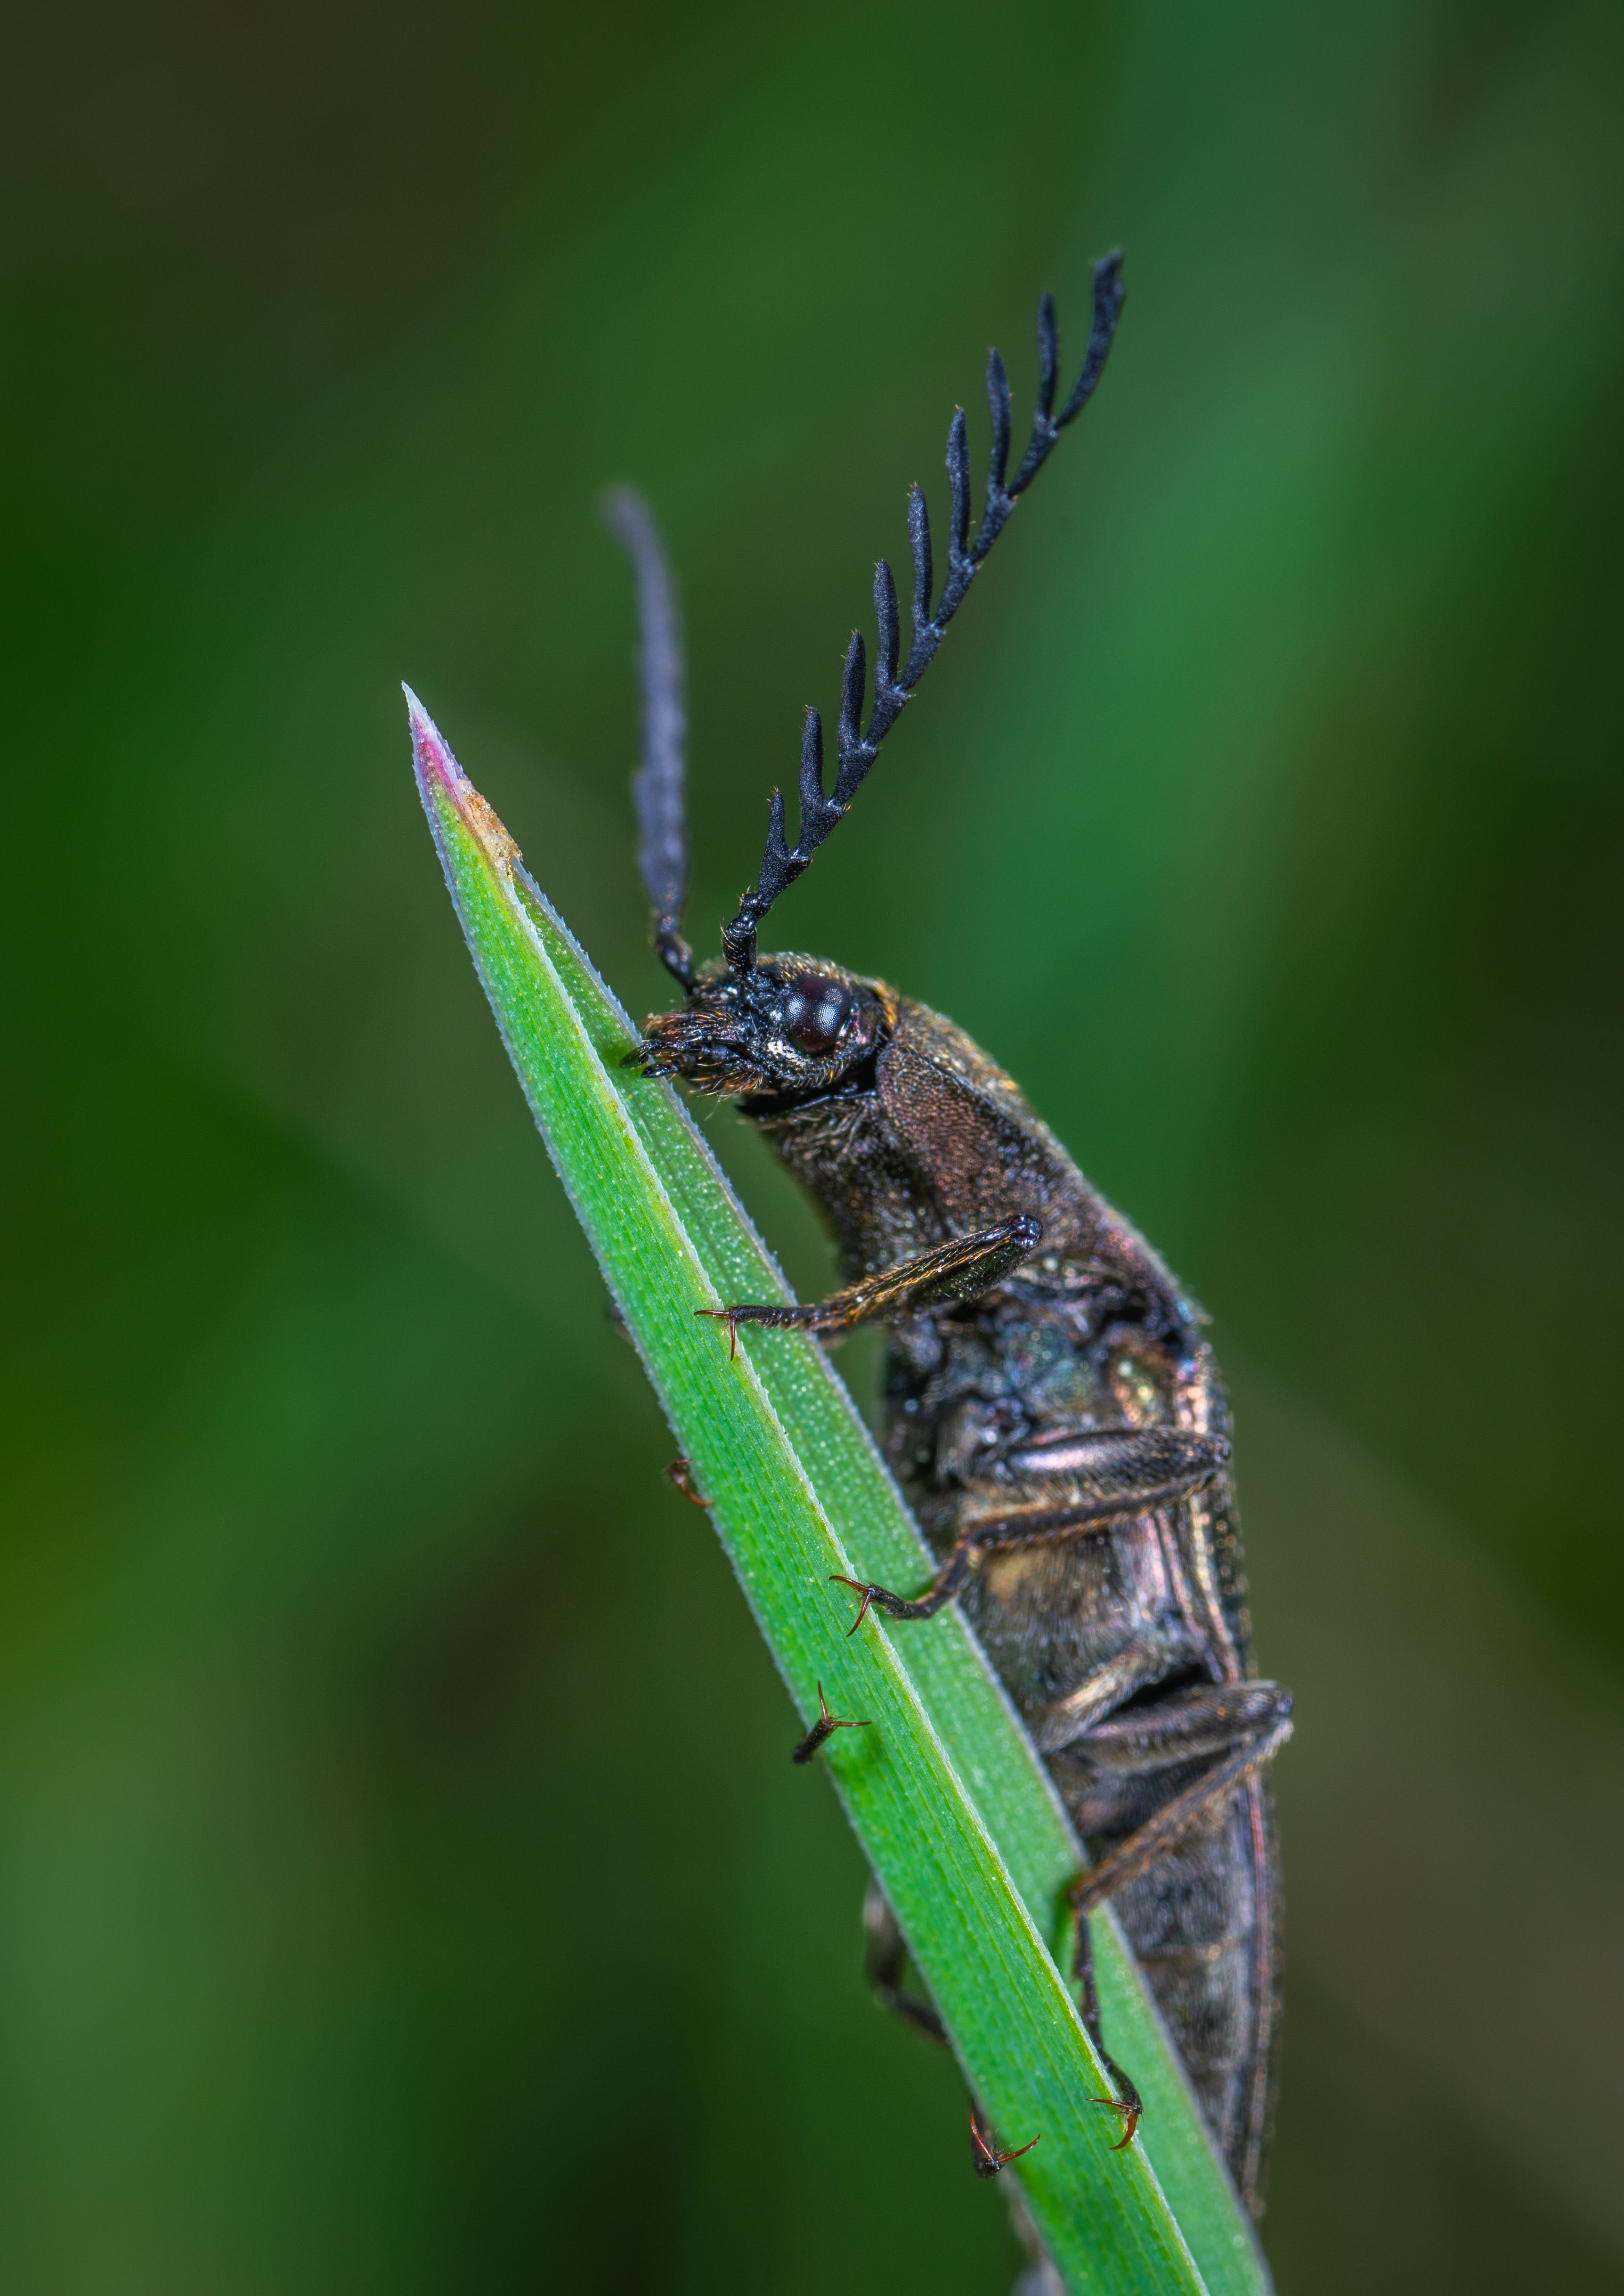 Selective Focus Photography of Black Leaf-horned Beetle Perched on Green Leaf